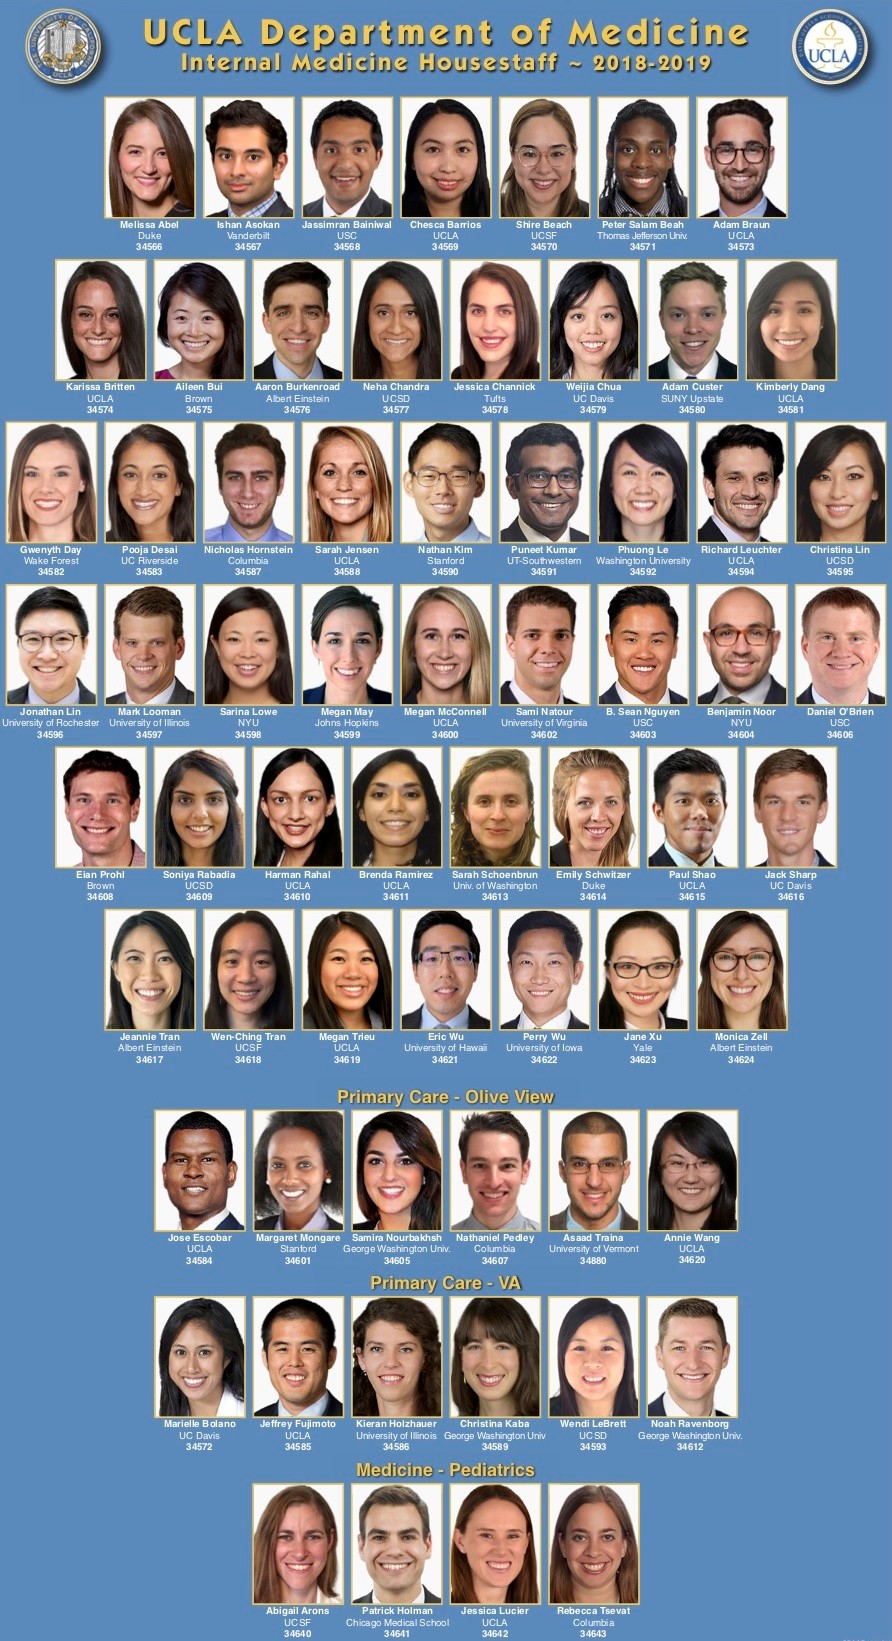 Current Residents - UCLA Internal Medicine Residency Program